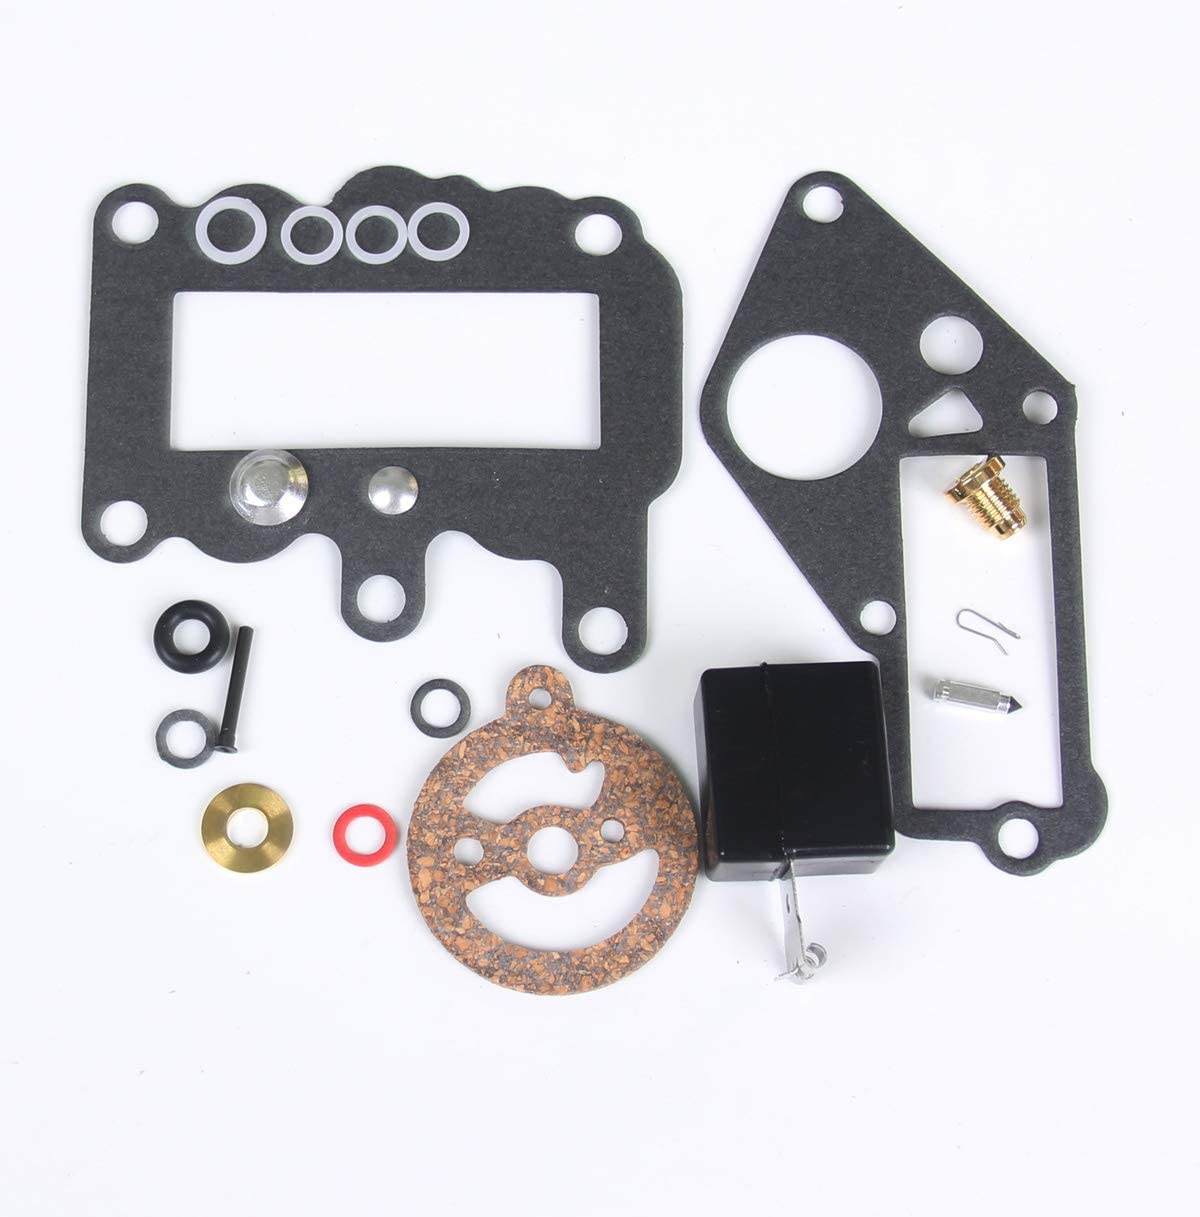 New Carburetor Carb Repair Rebuild Kits Float for Johnson and Evinrude outboard 9.5 hp Engine 1964-1973 Replace 382048